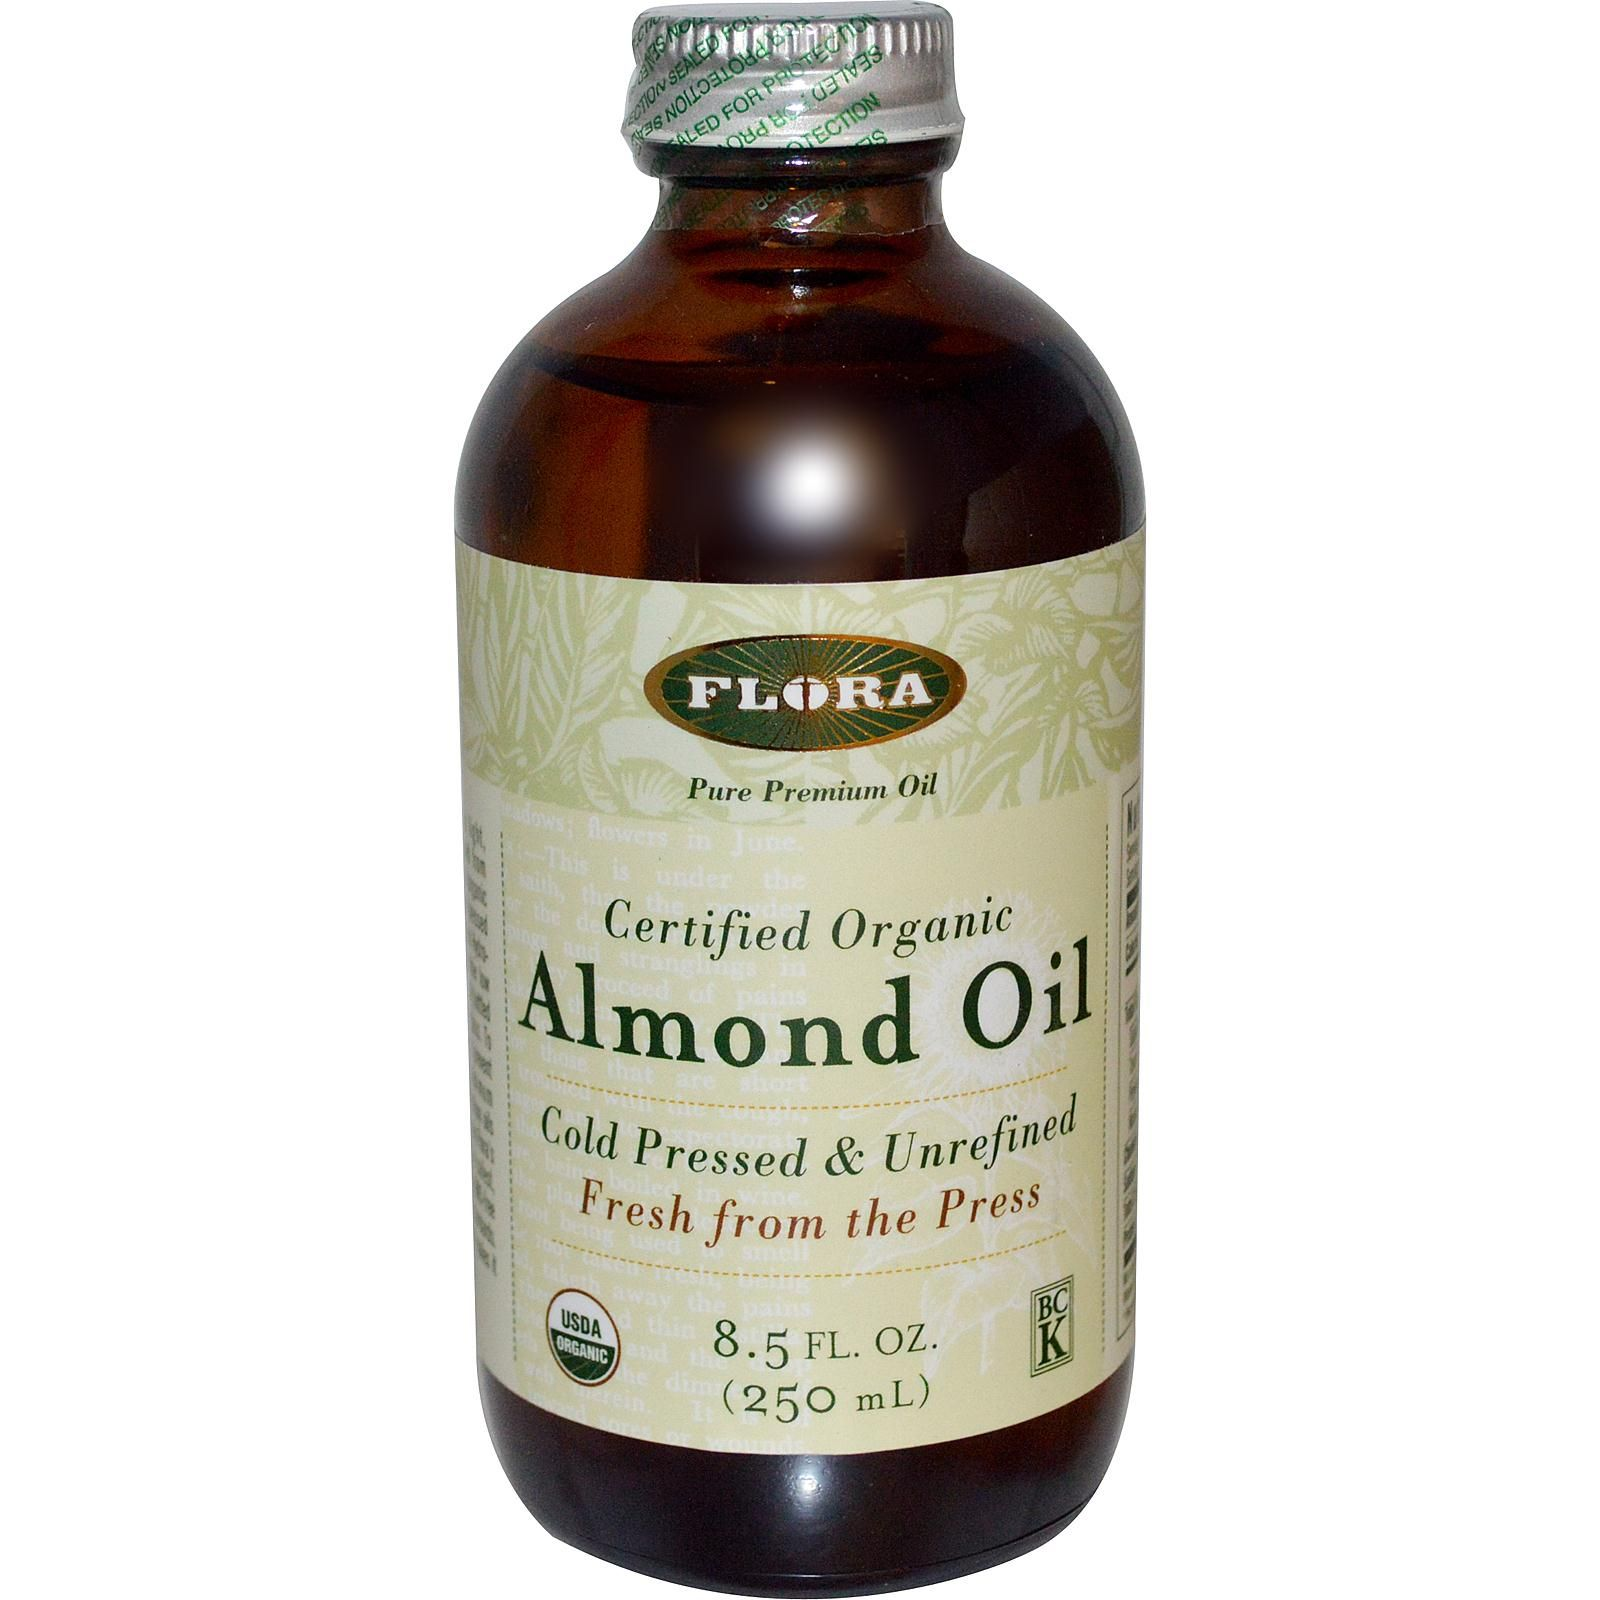 Flora, Certified Organic Almond Oil, 8.5 fl oz (250 ml) - iHerb.com